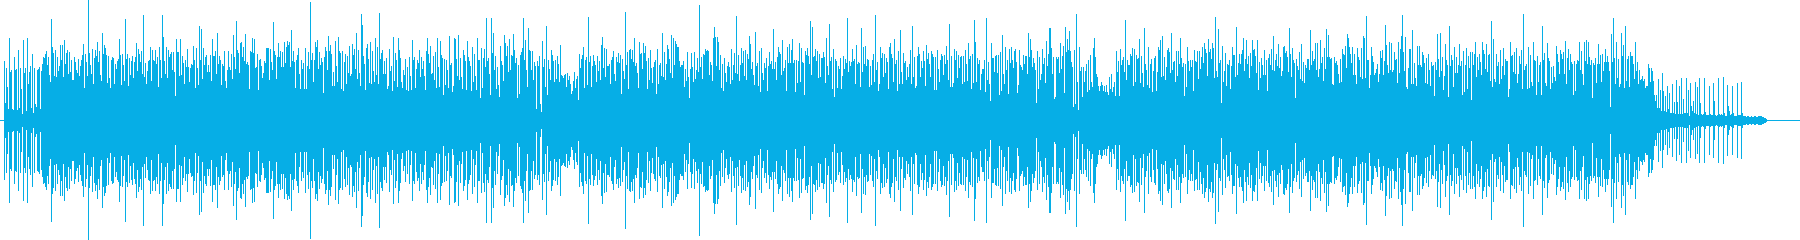 Nori good calm pops's reproduced waveform